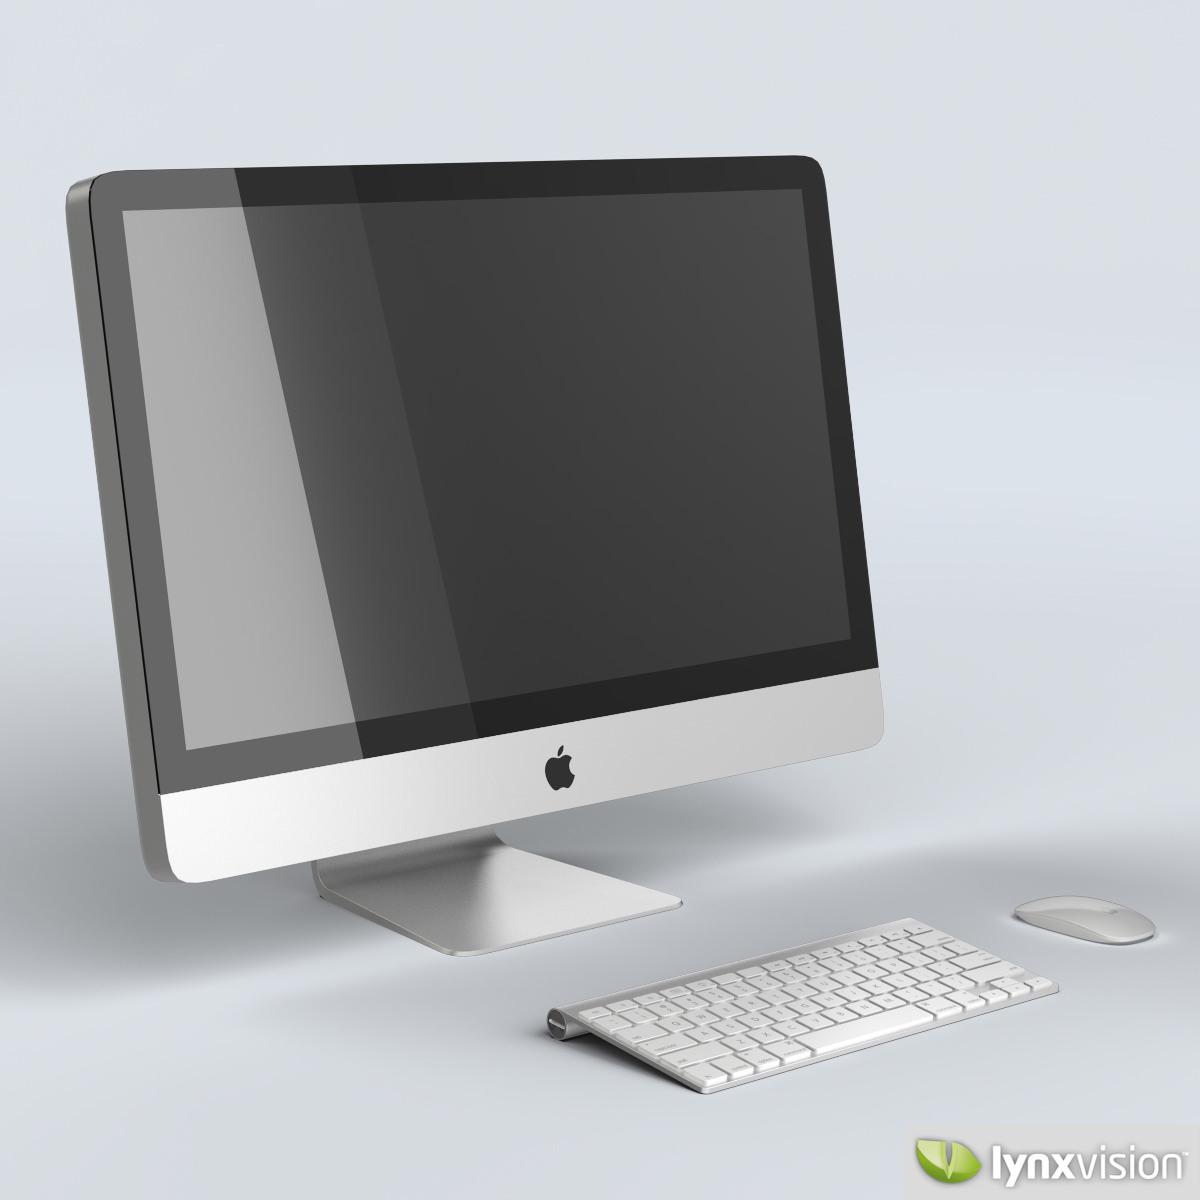 macintosh computers models - photo #22